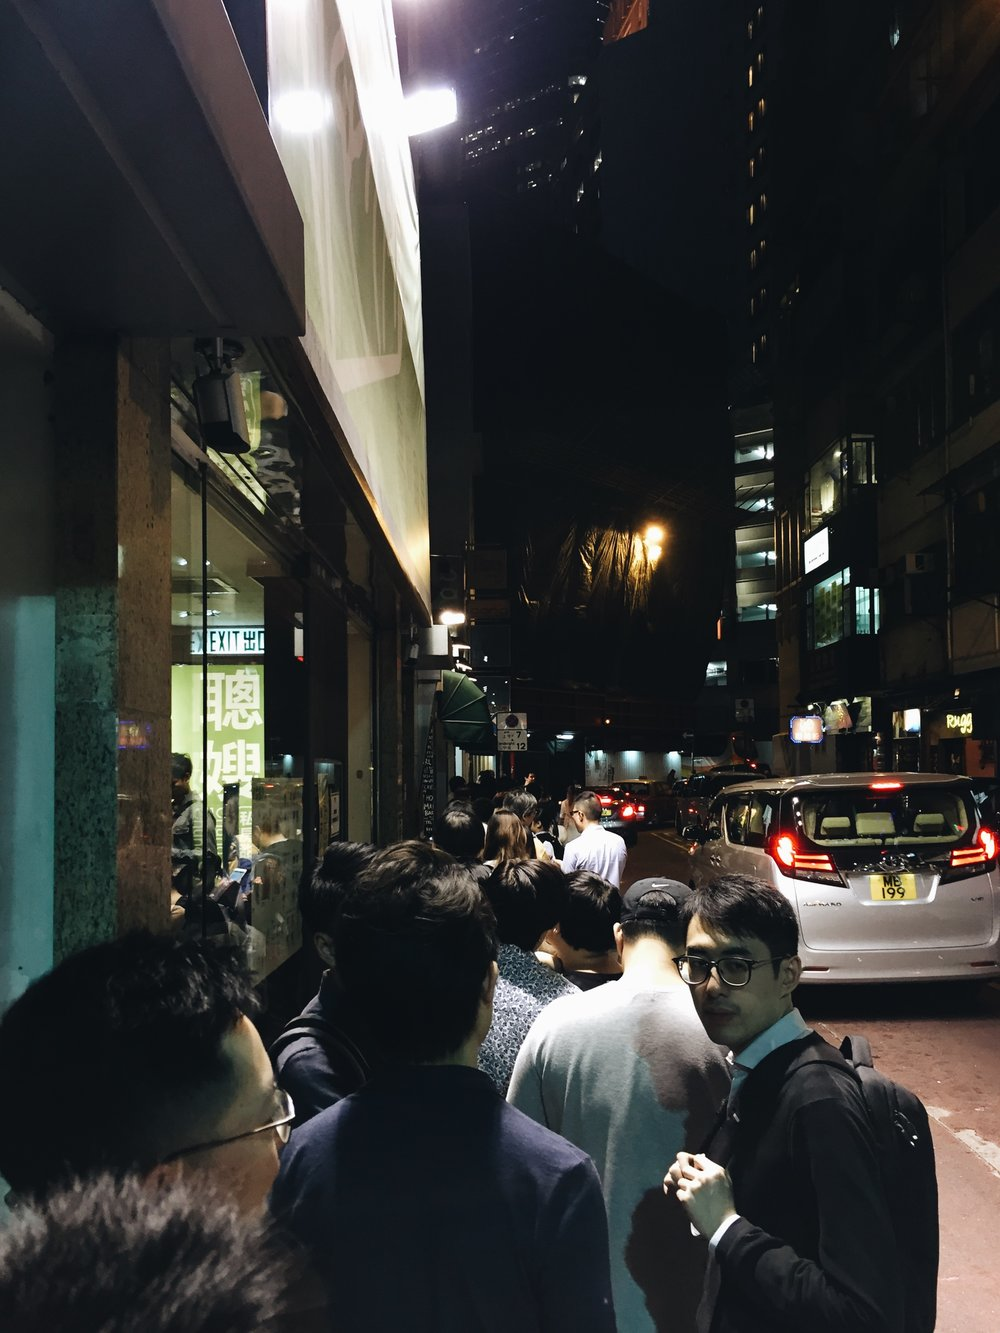 Lining up for an effing elevator is one of the most ridiculous things in Hong Kong. For the record, I waited for 20 minutes just to get to the restaurant.